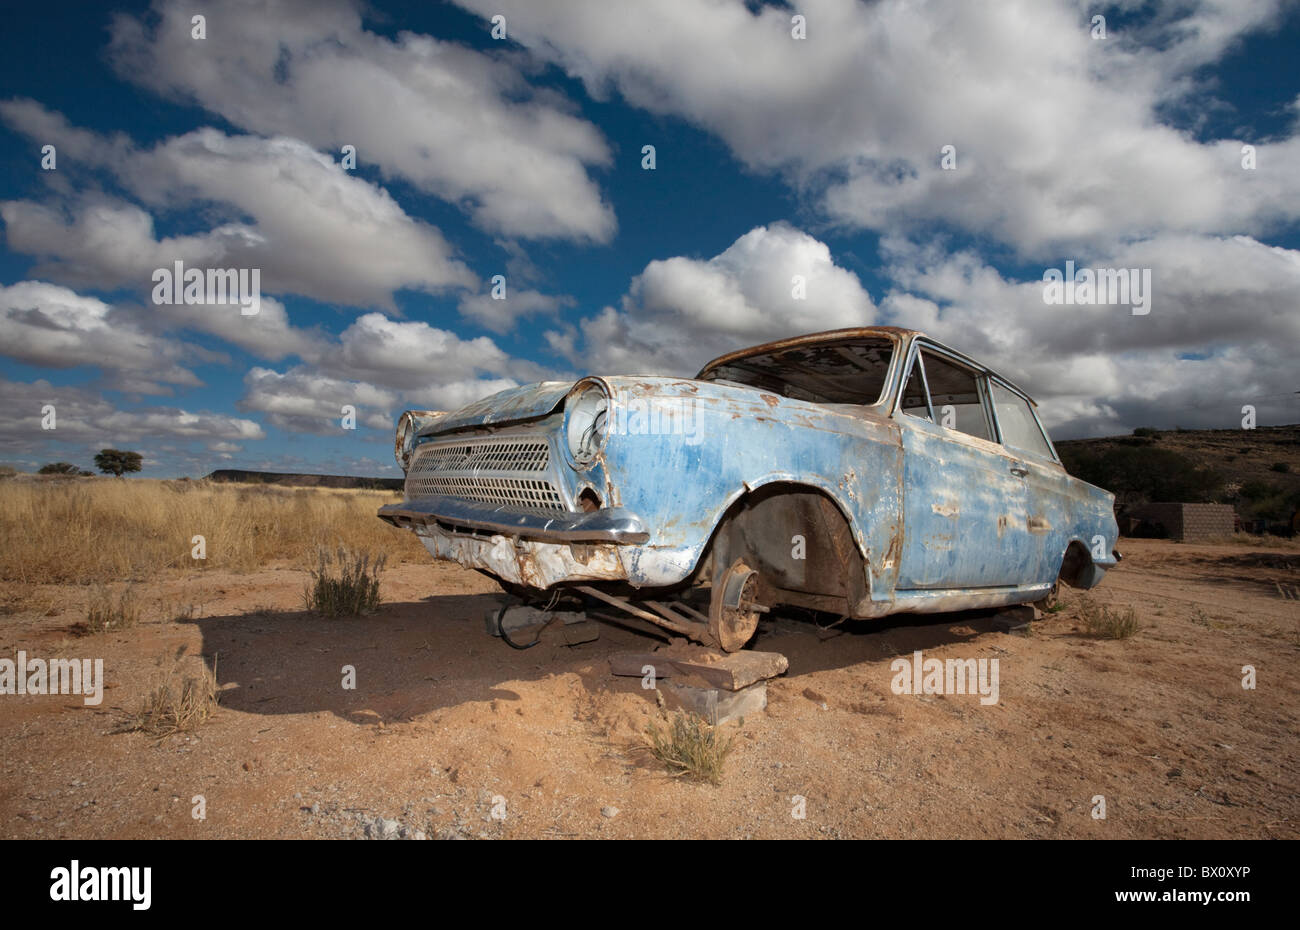 Old car on blocks in the desert, Namibia. - Stock Image